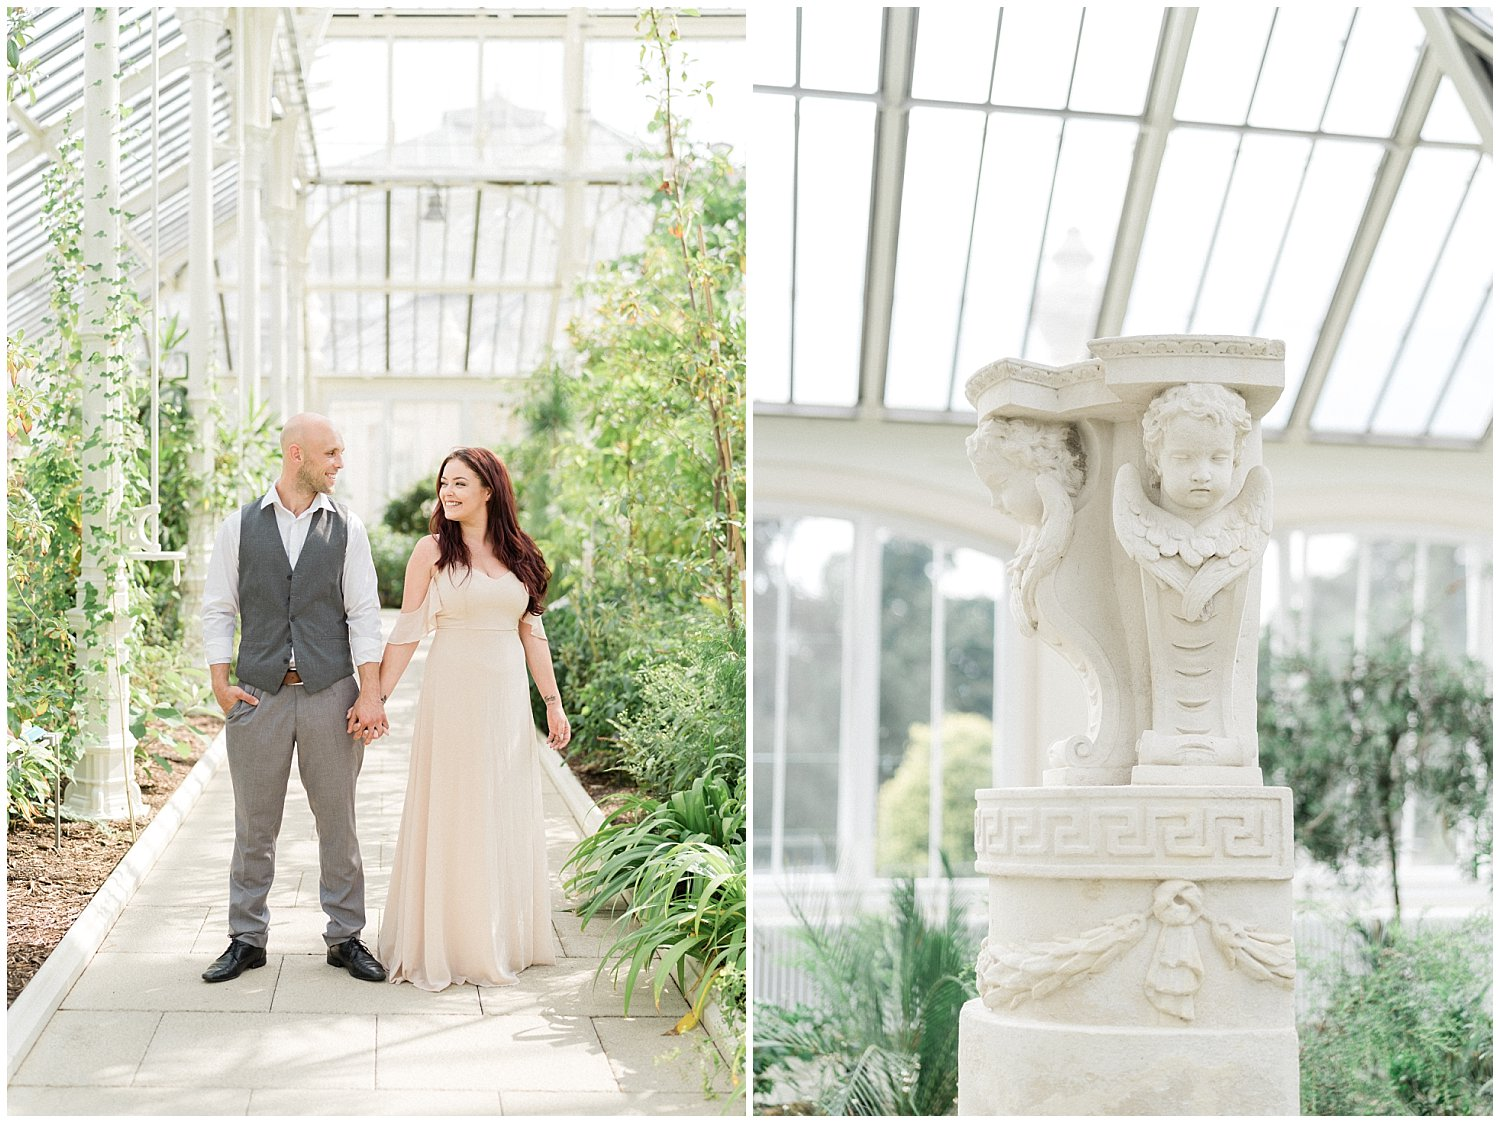 Royal Botanic Gardens Kew Engagement Session- London and Destination Wedding Photographer by WInnie Dora Photography